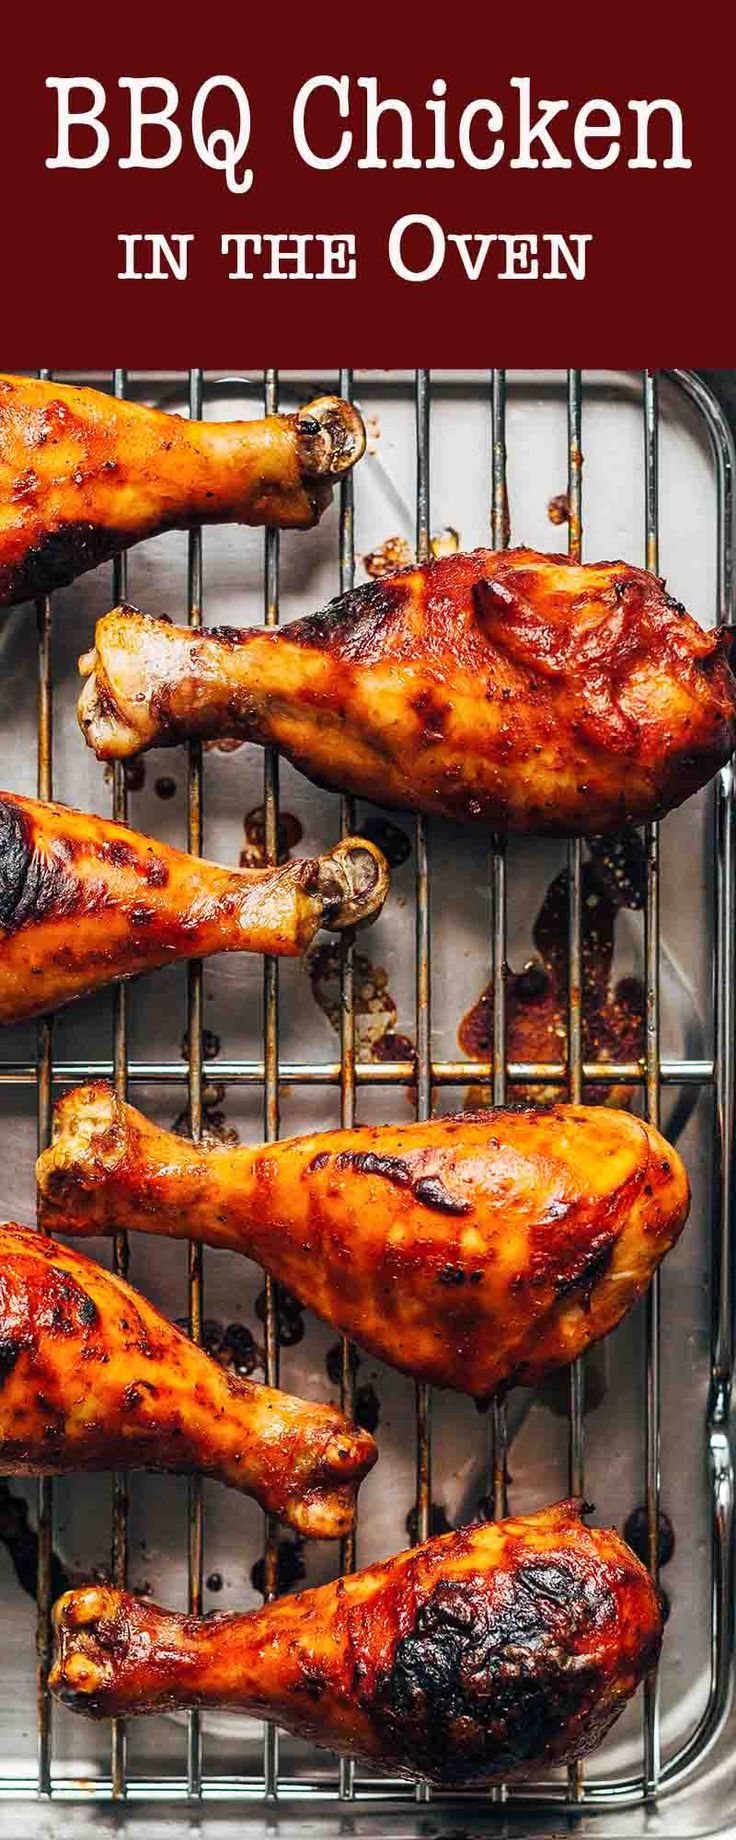 Easy BBQ Chicken in the Oven! Works with any barbecue sauce. Ready in an hour, including marinating and cook time.